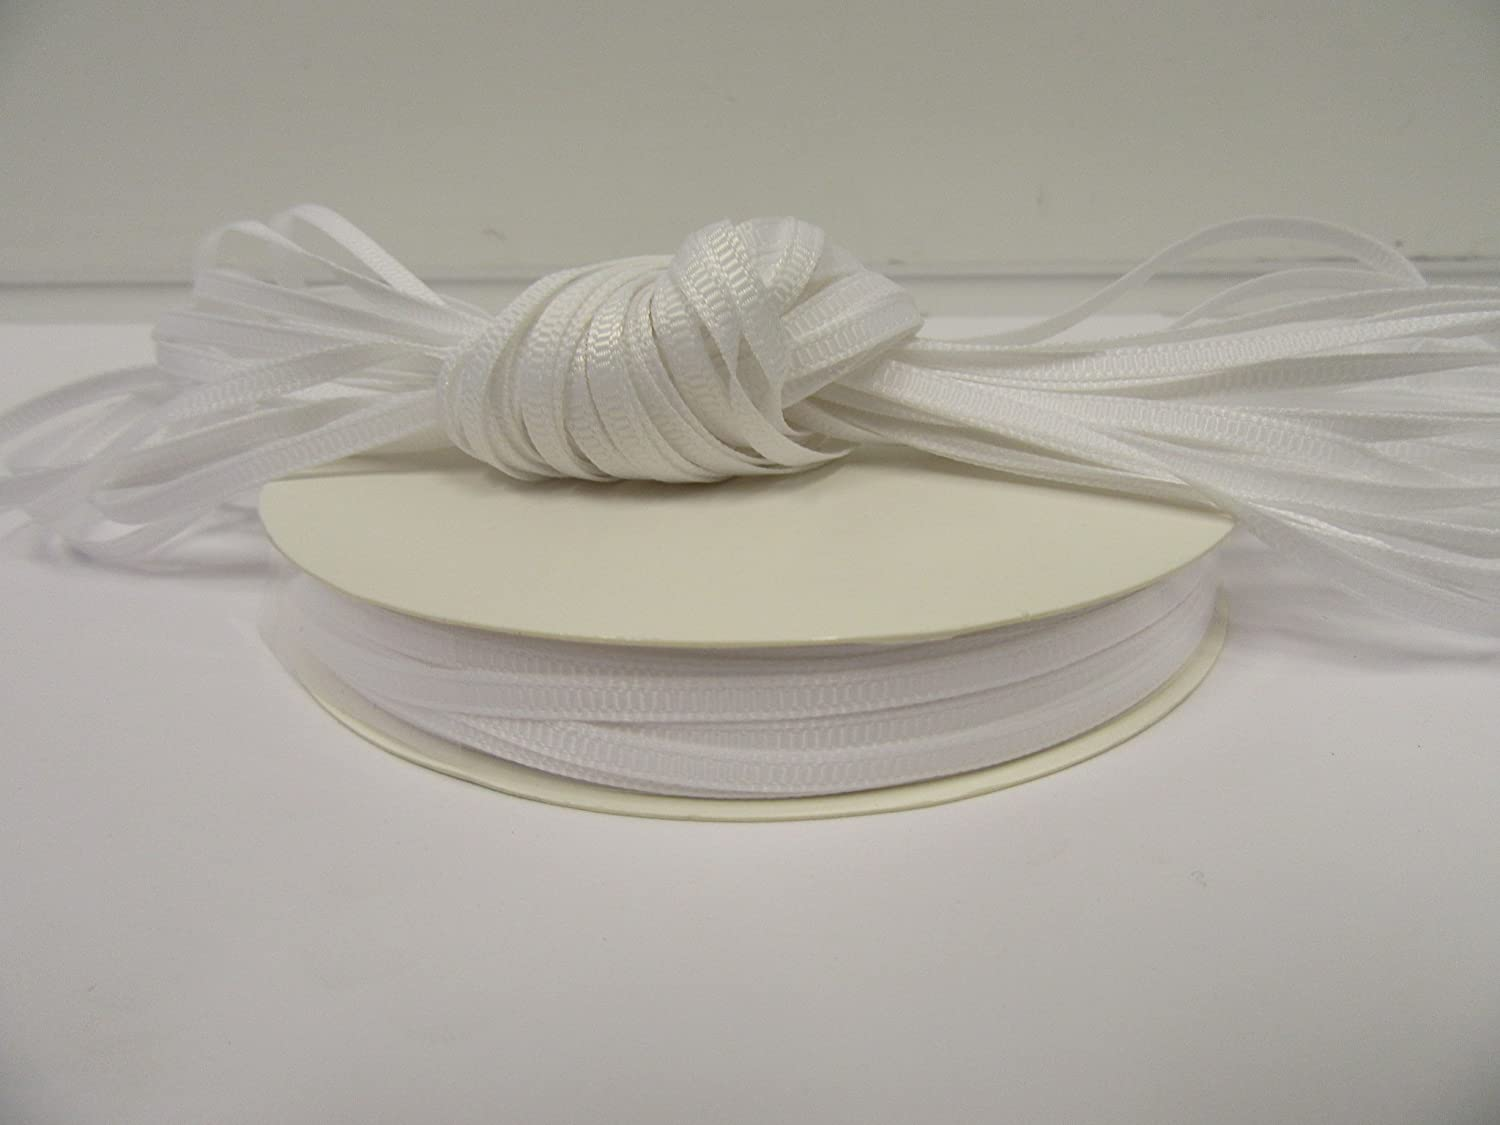 Beautiful Ribbon 10 metri di 3 millimetri grosgrain costine nastro bianco bifacciali 3 mm 3mm